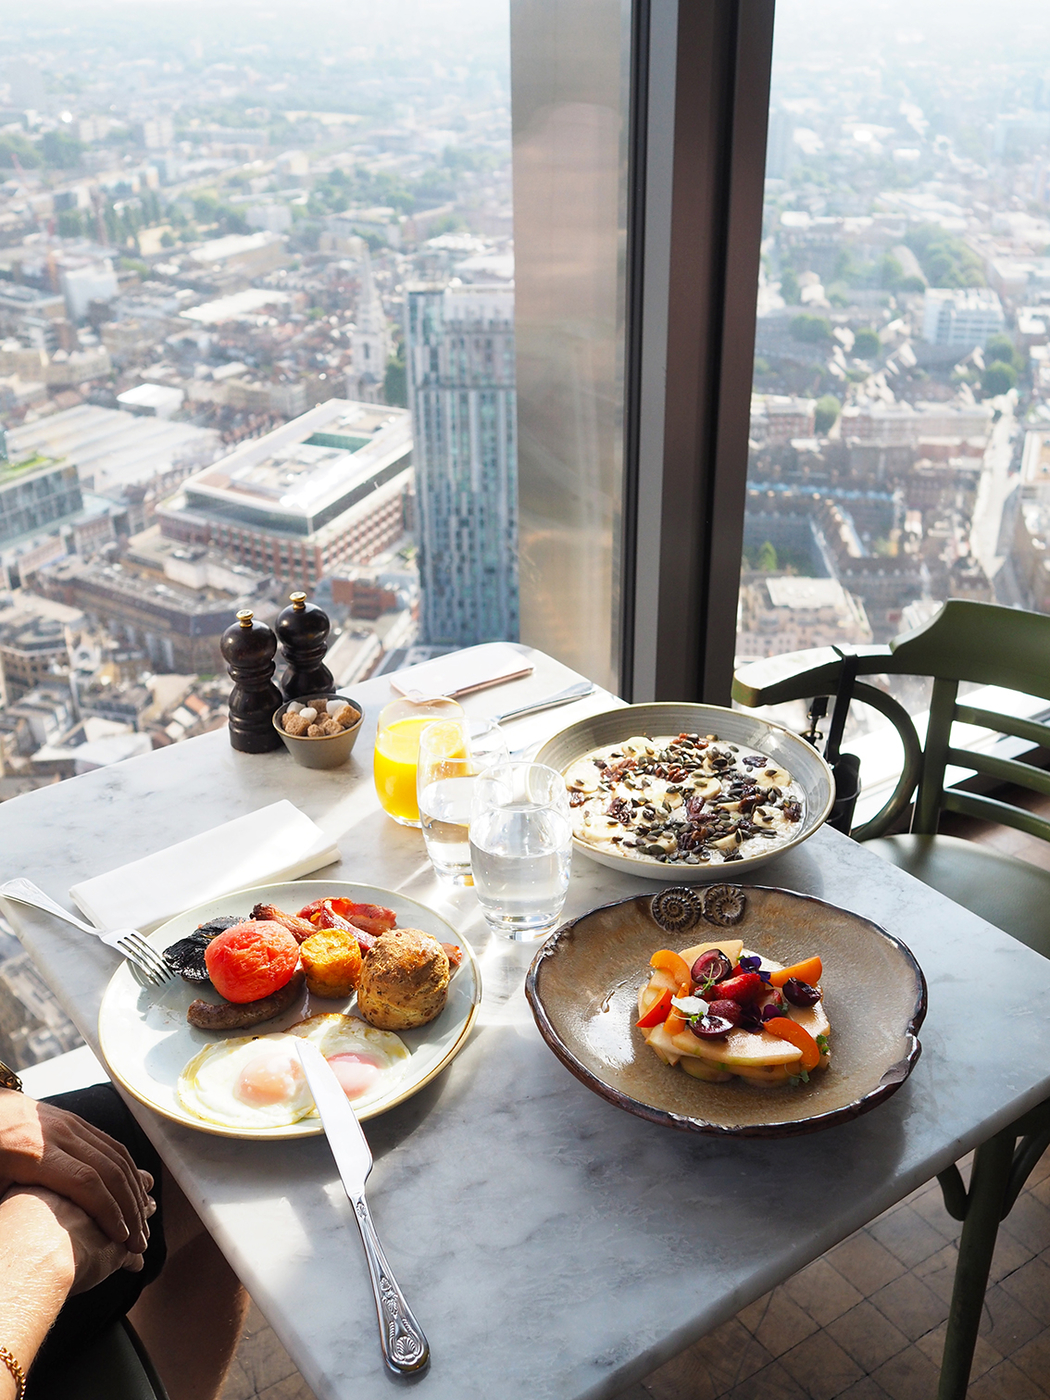 BREAKFAST WITH A VIEW – DUCK AND WAFFLE